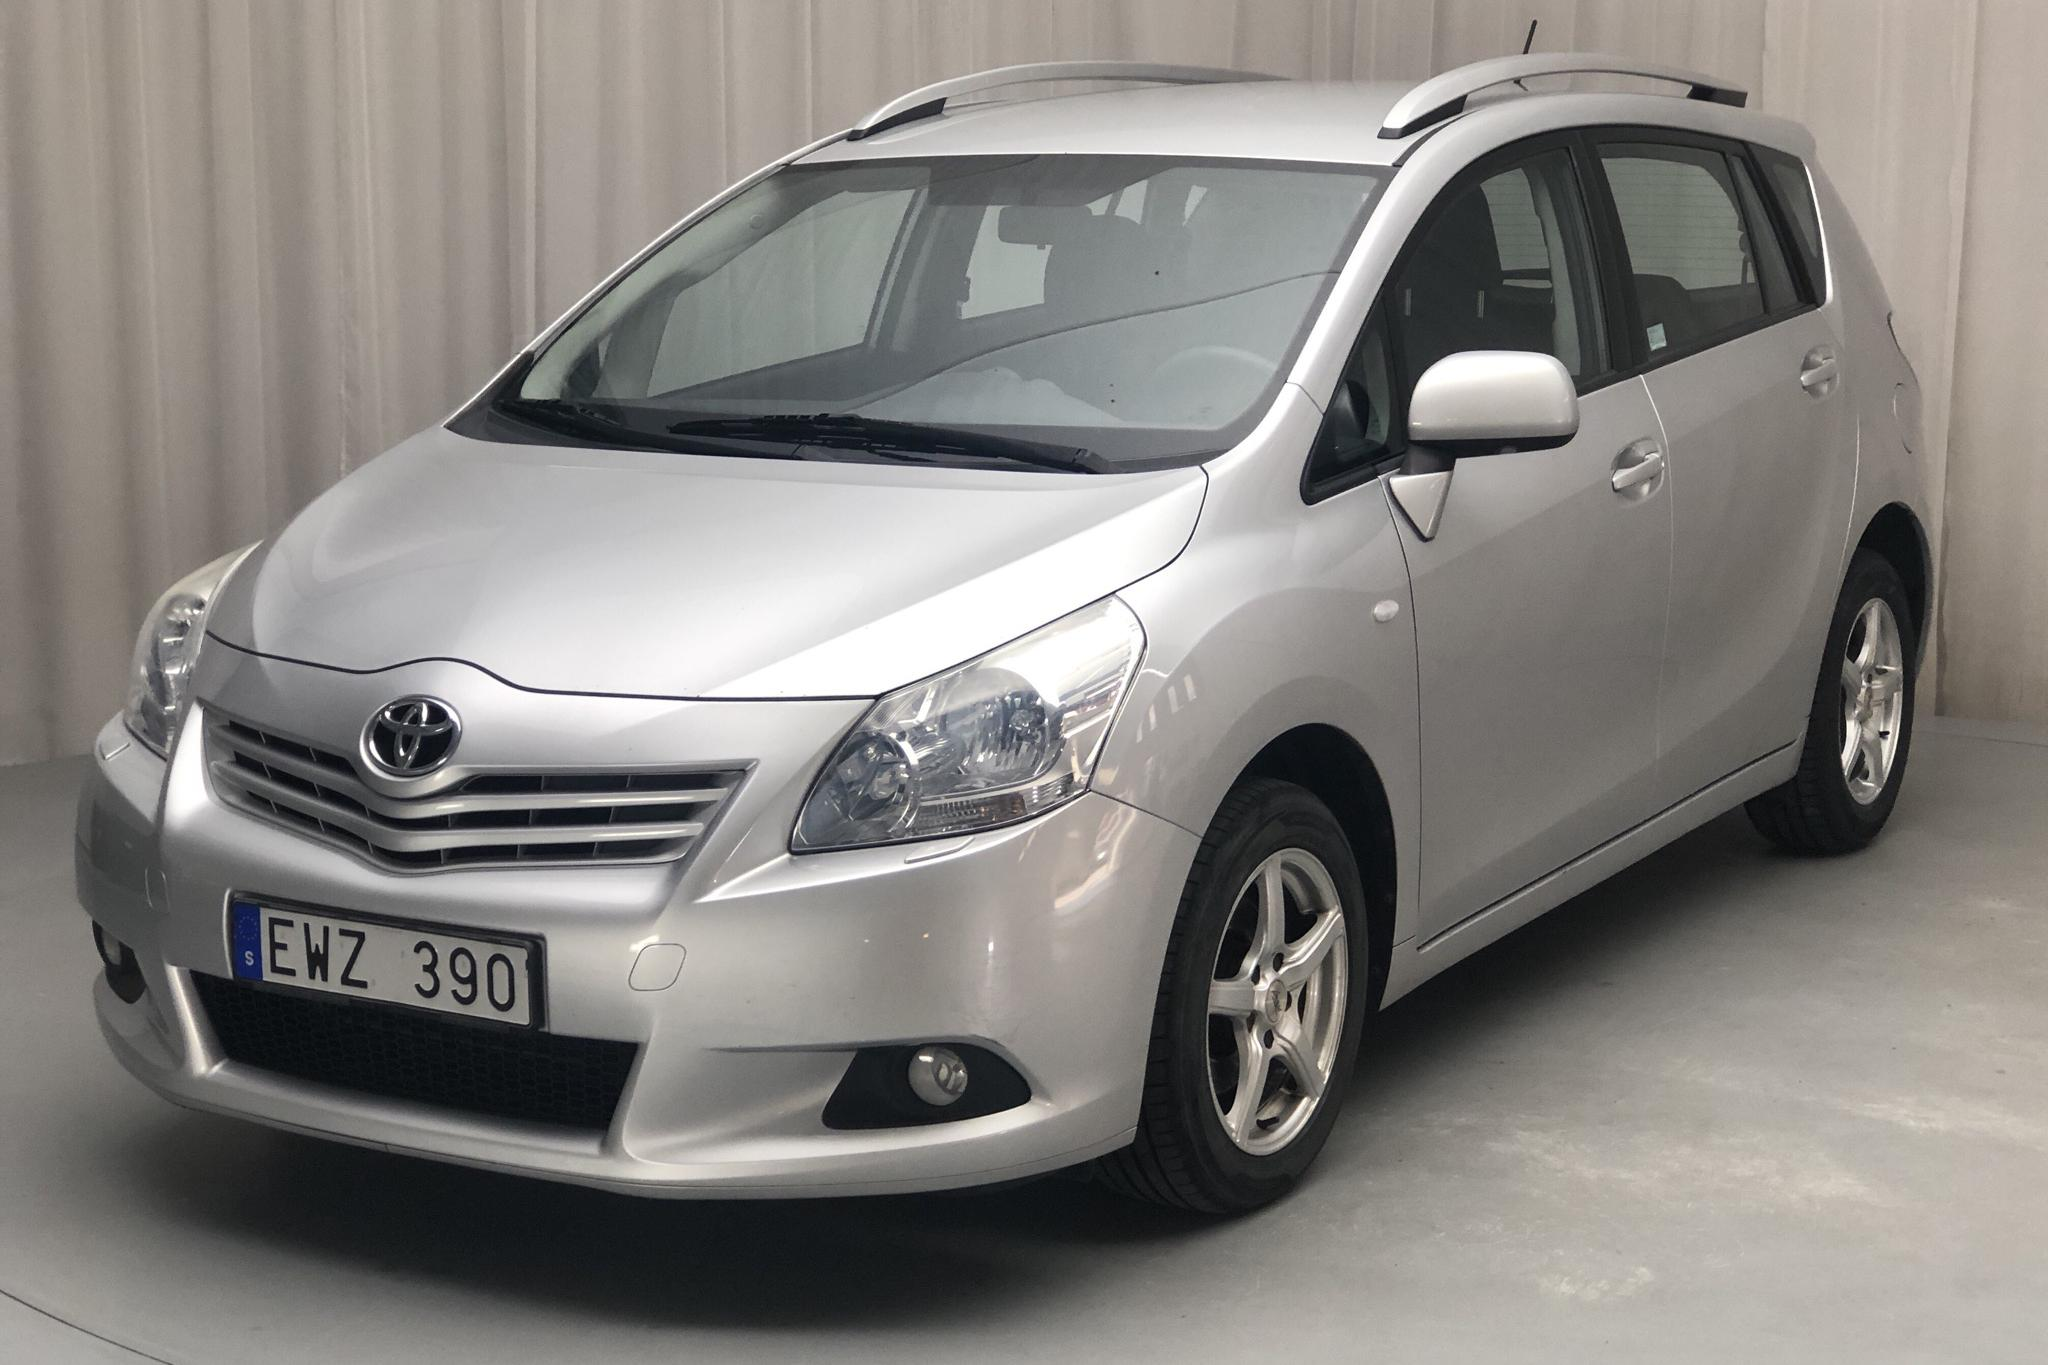 Toyota Verso 1.8 (147hk) - 18 172 mil - Manuell - silver - 2009